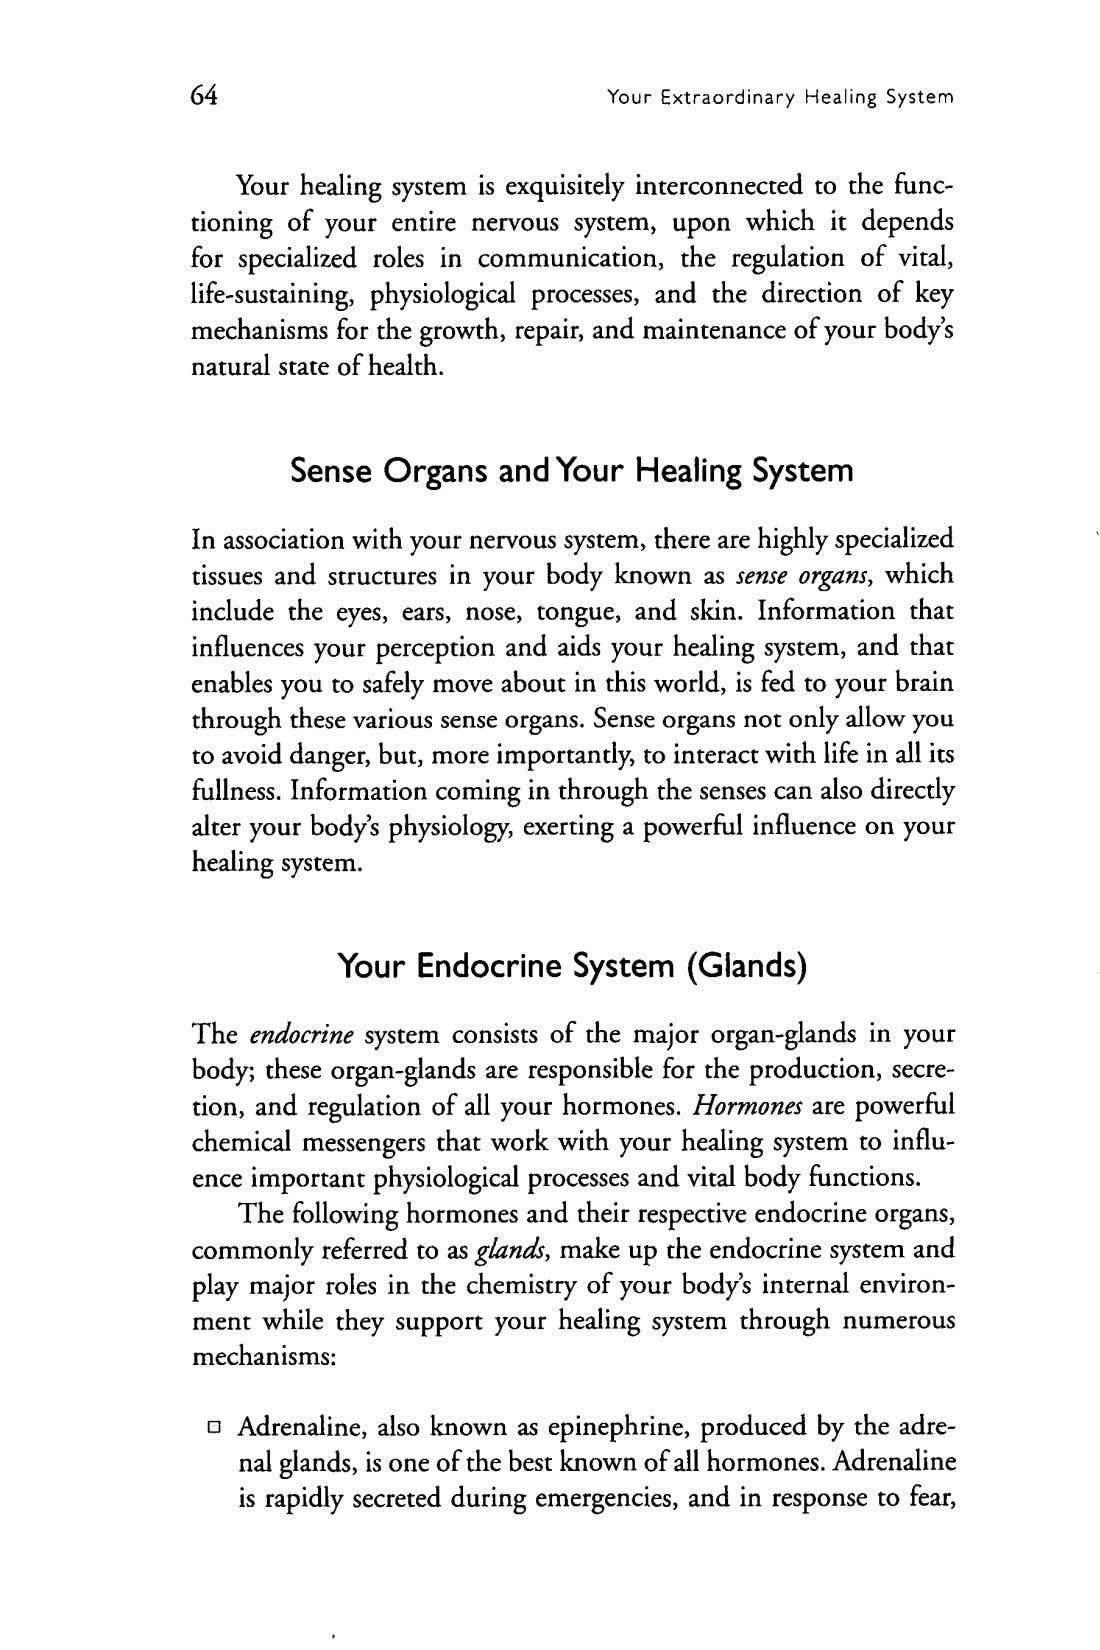 64 Your Extraordinary Healing System Your healing system is exquisitely interconnected to the func tioning